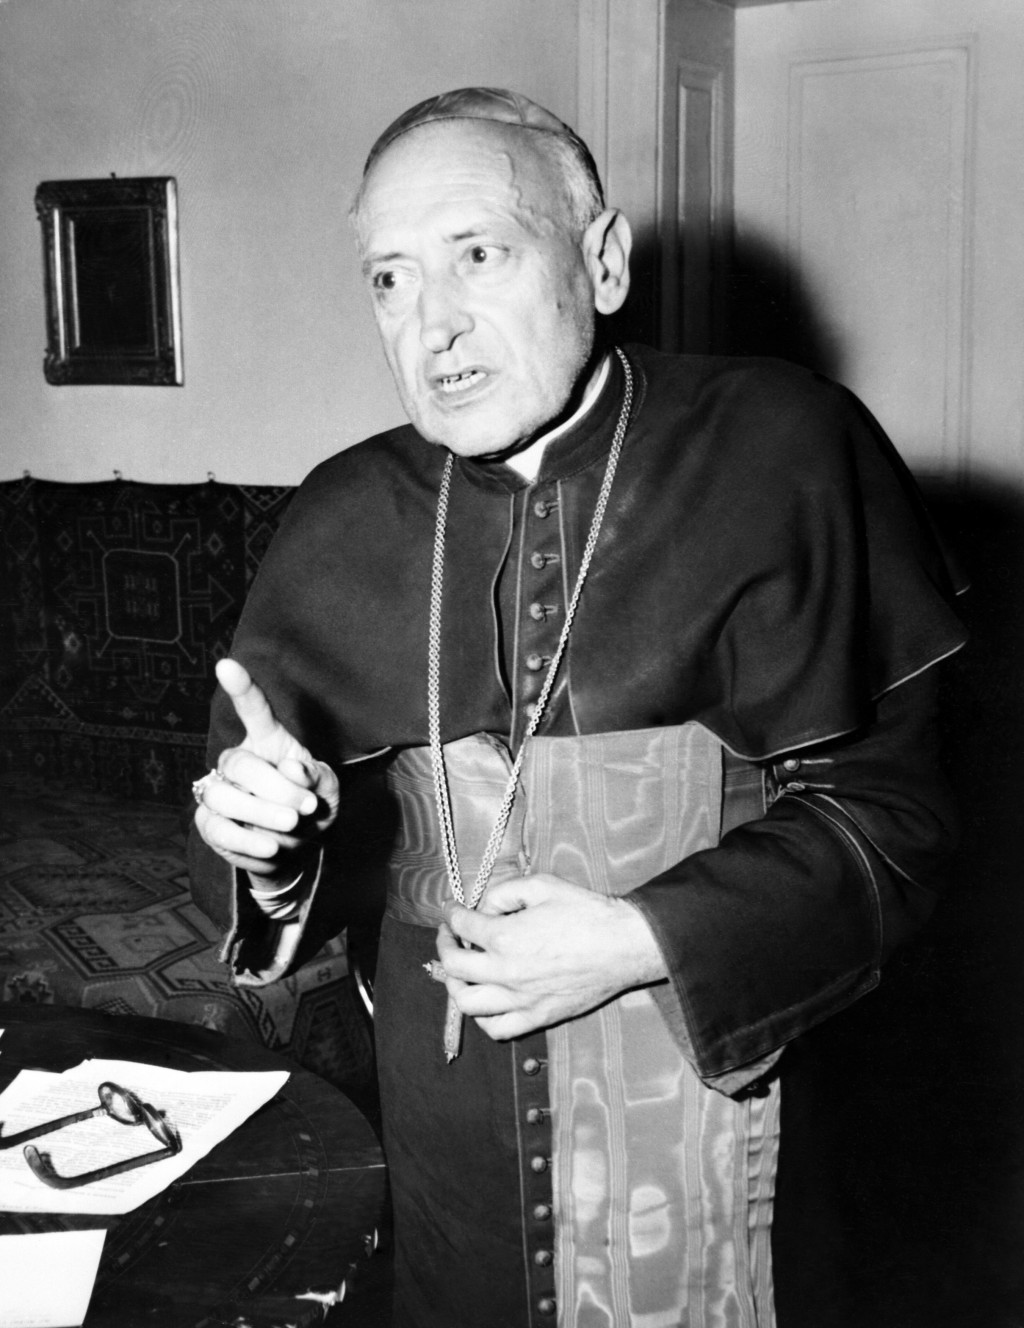 FILE - This Oct. 31, 1956 black and white file photo shows Hungarian Cardinal Jozsef Mindszenty, freed after more than seven years in a communist jail...